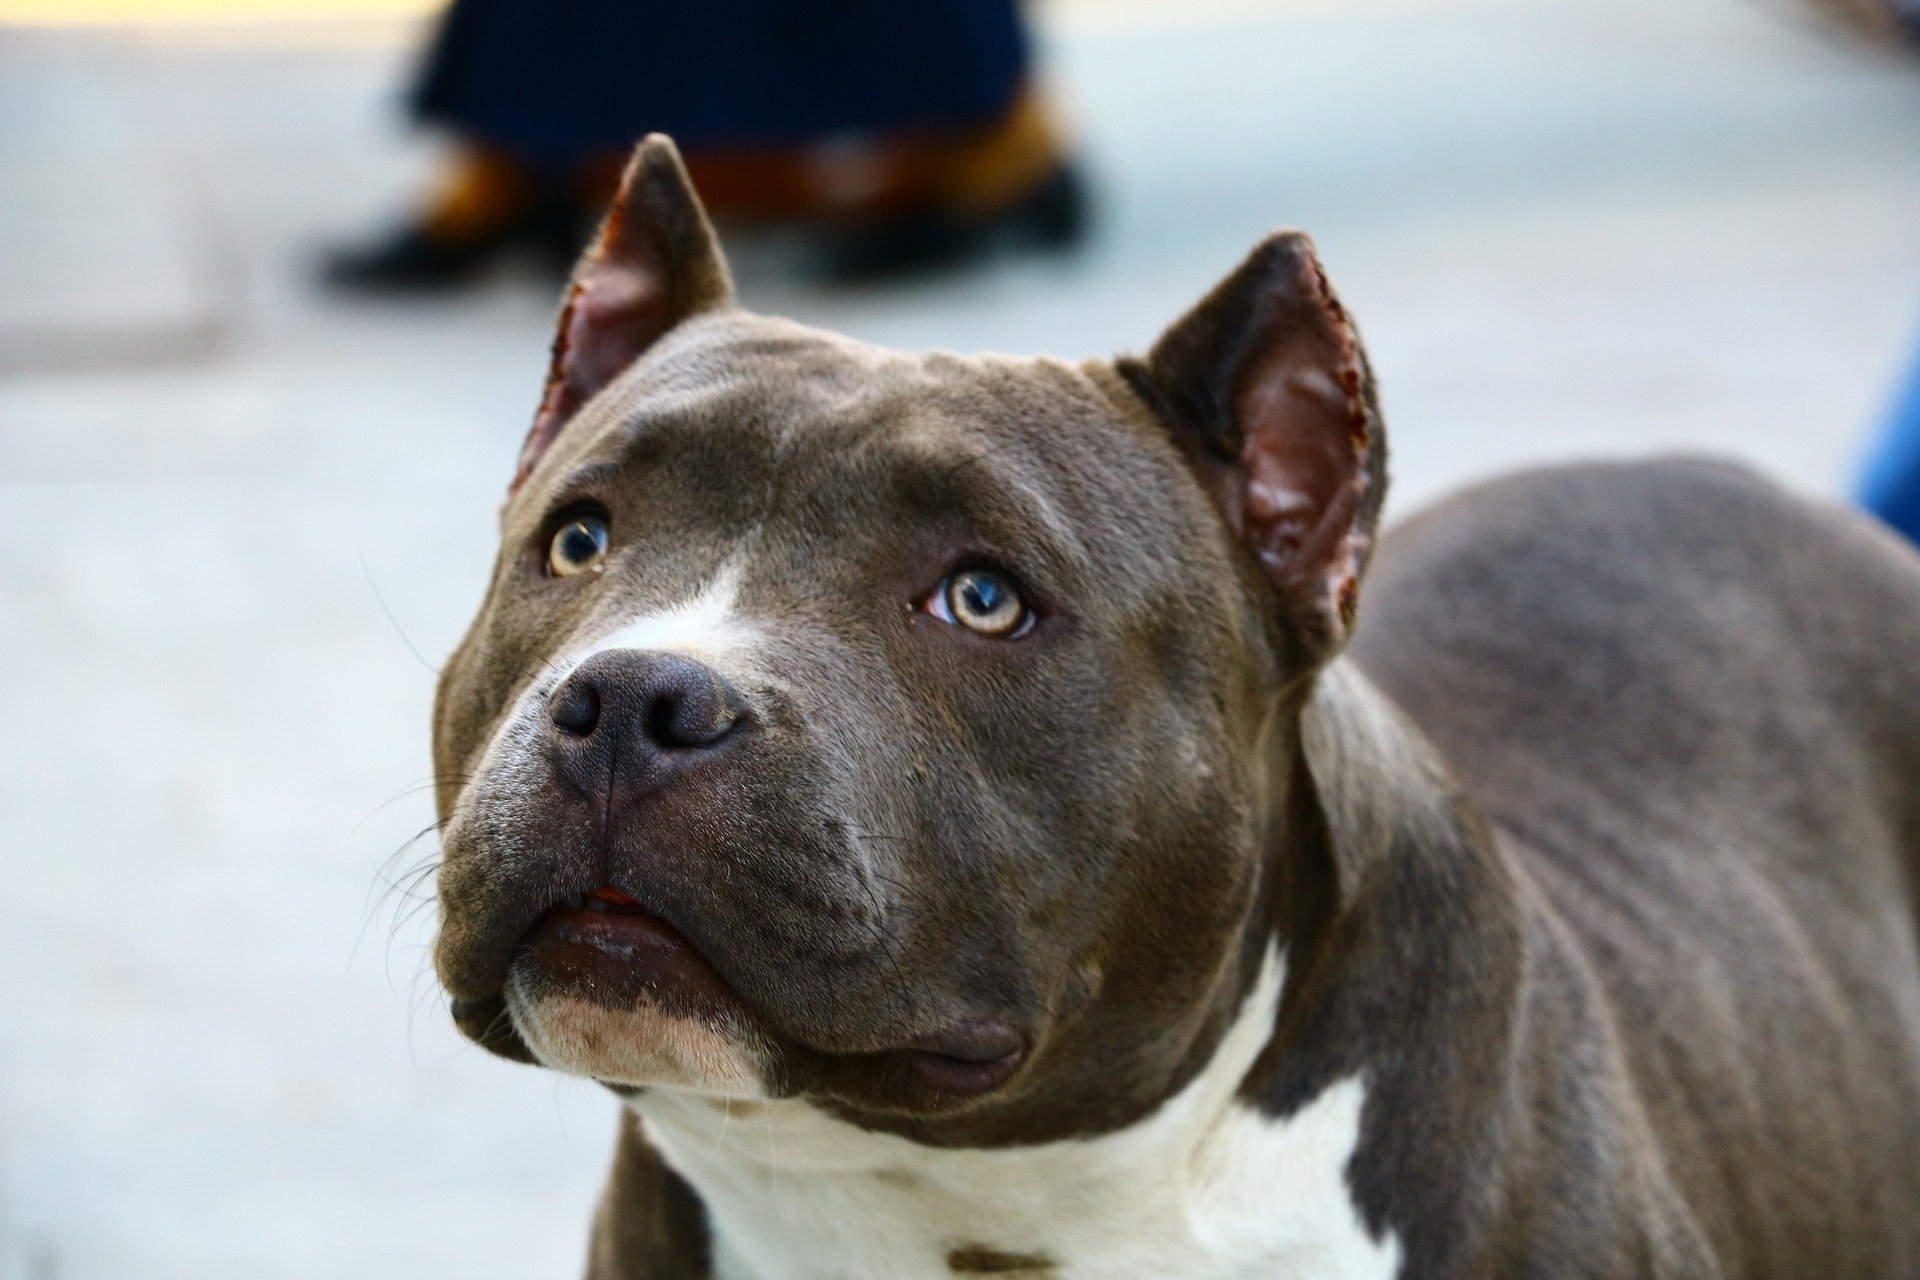 Help Ban Imports Of Dogs With Cropped Ears